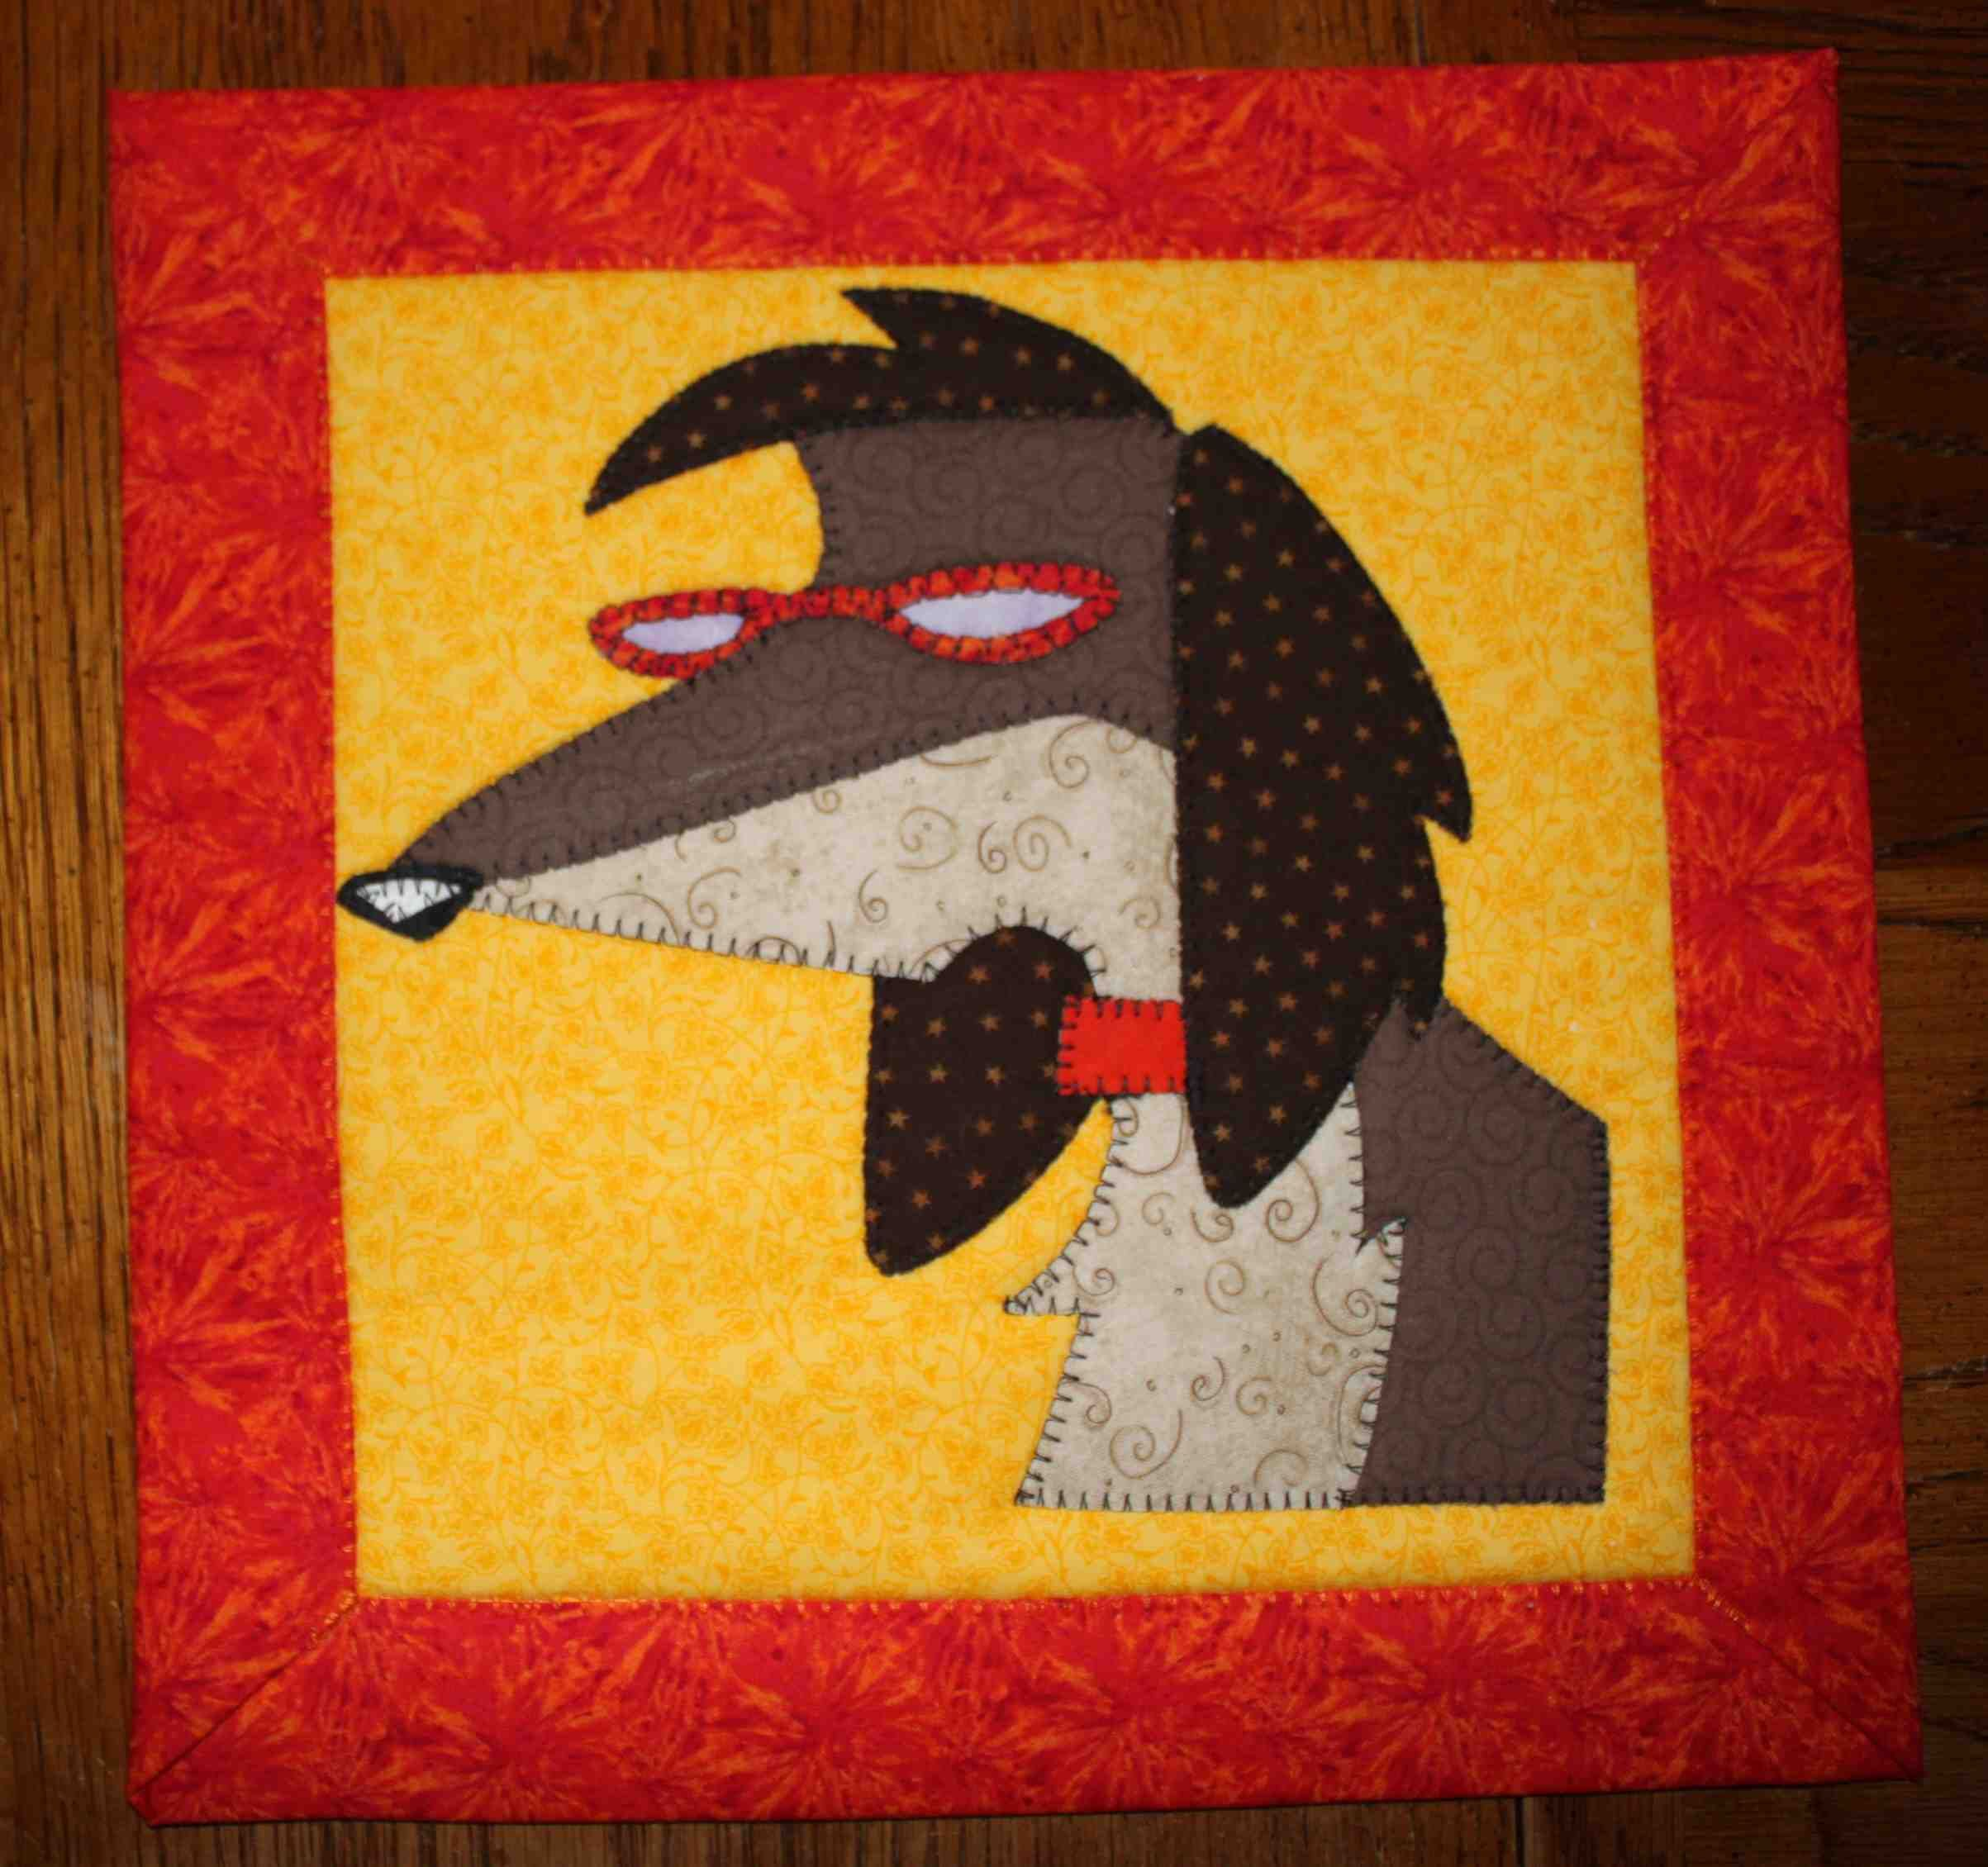 Silly dog quilted applique wall hanging. Dog quilt. | Quilts - Dogs ...